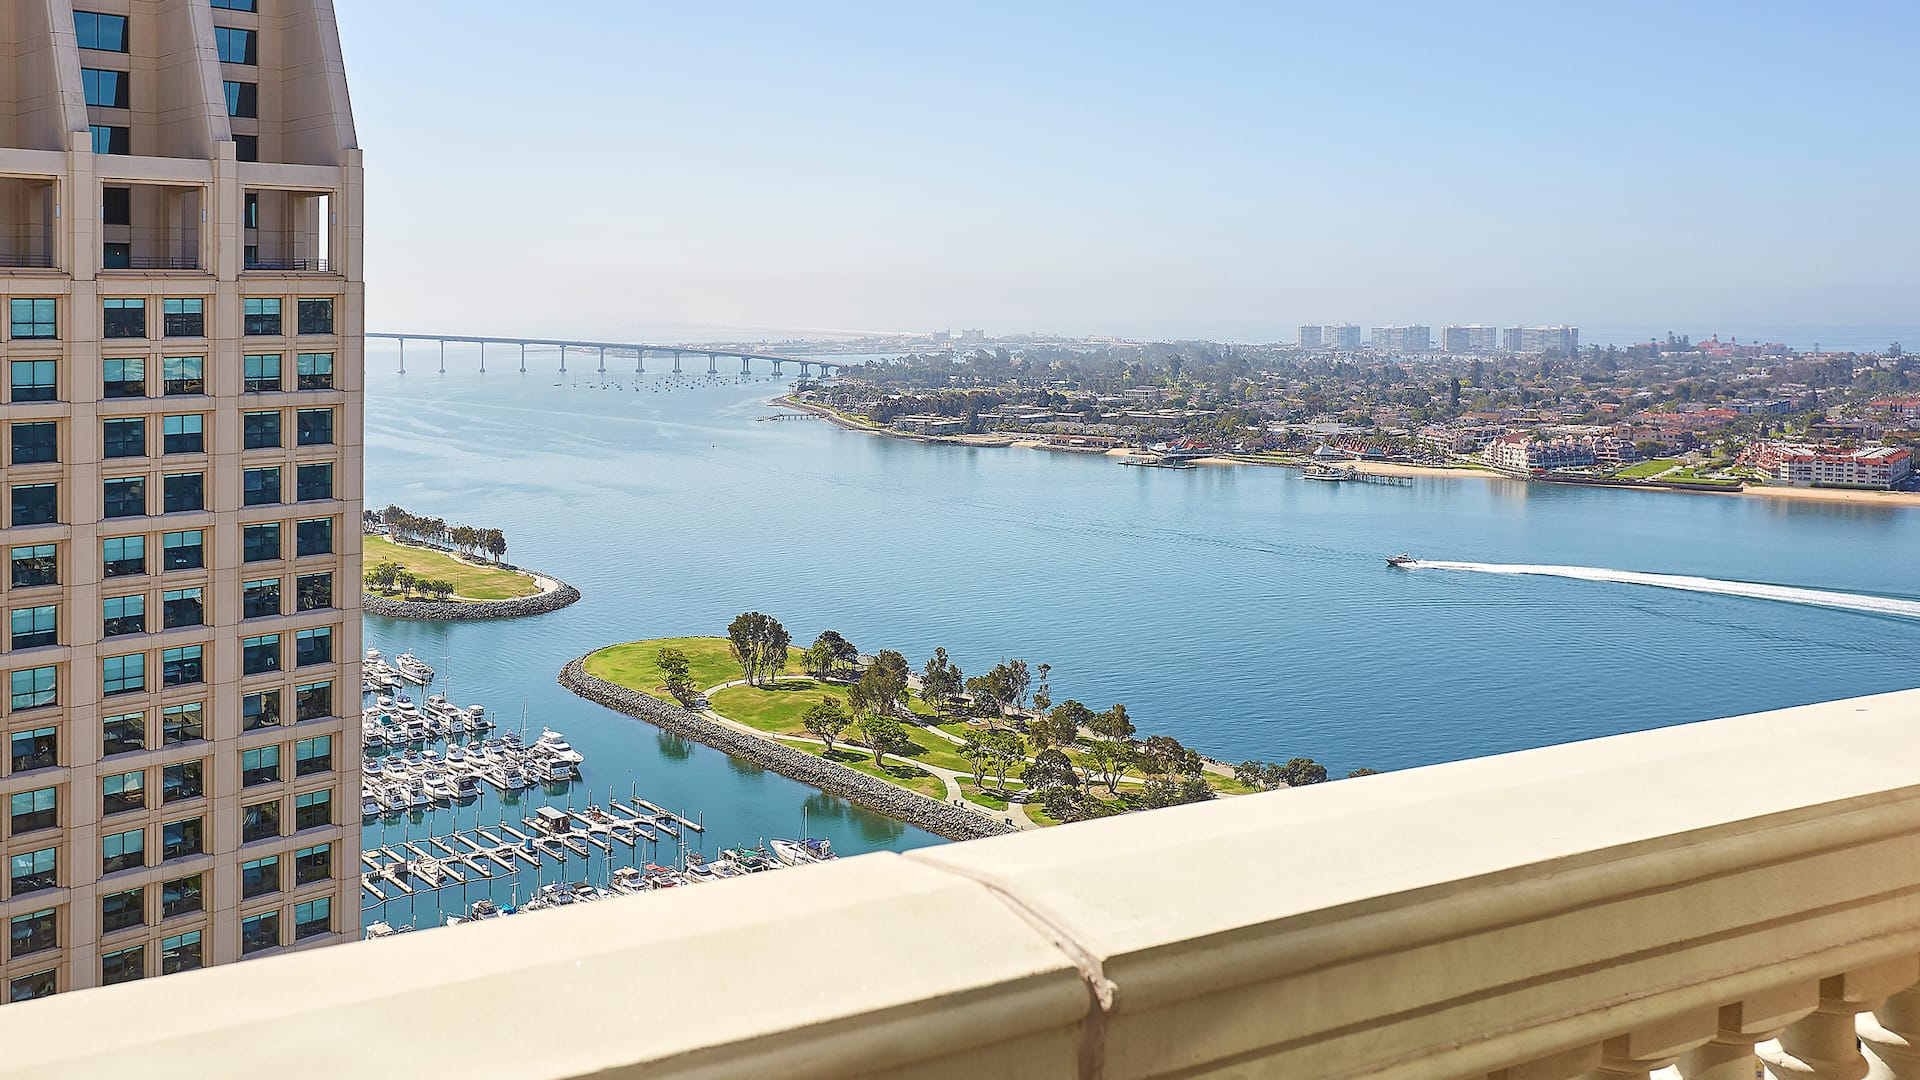 View from balcony at Manchester Grand Hyatt San Diego